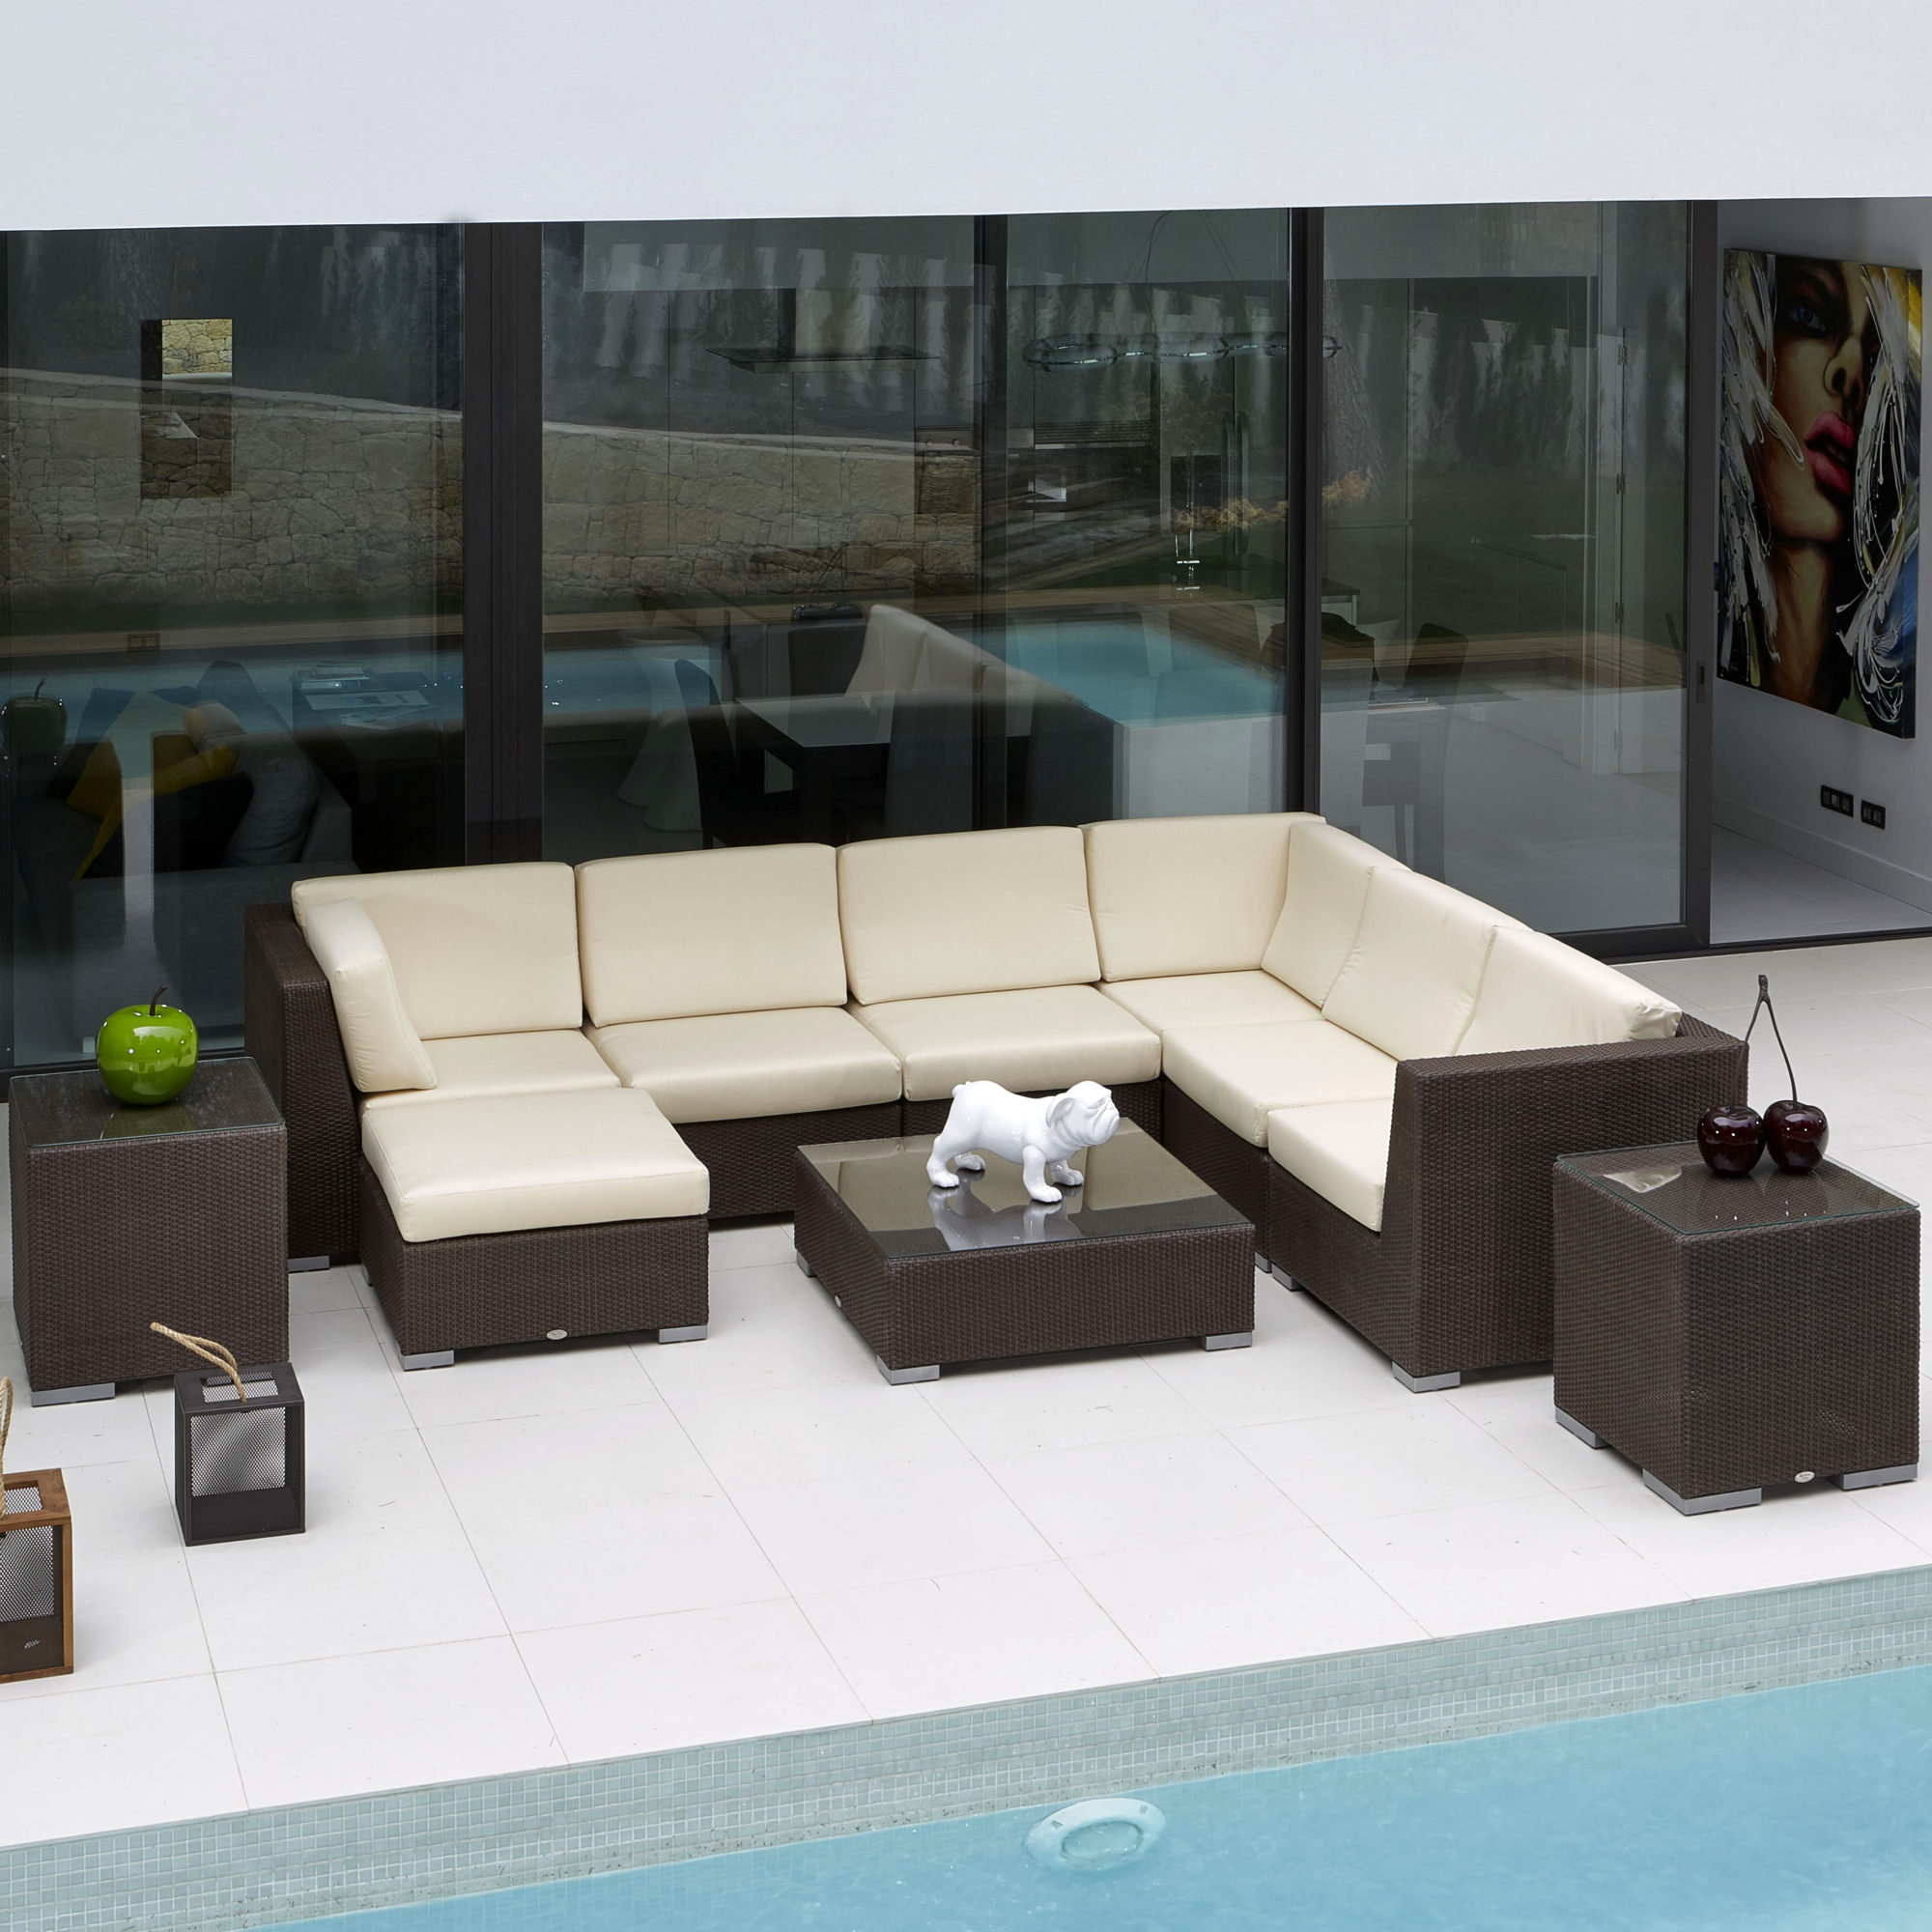 Sectional Couches Las Vegas Nv: Skyline Pacific Modular Sofa